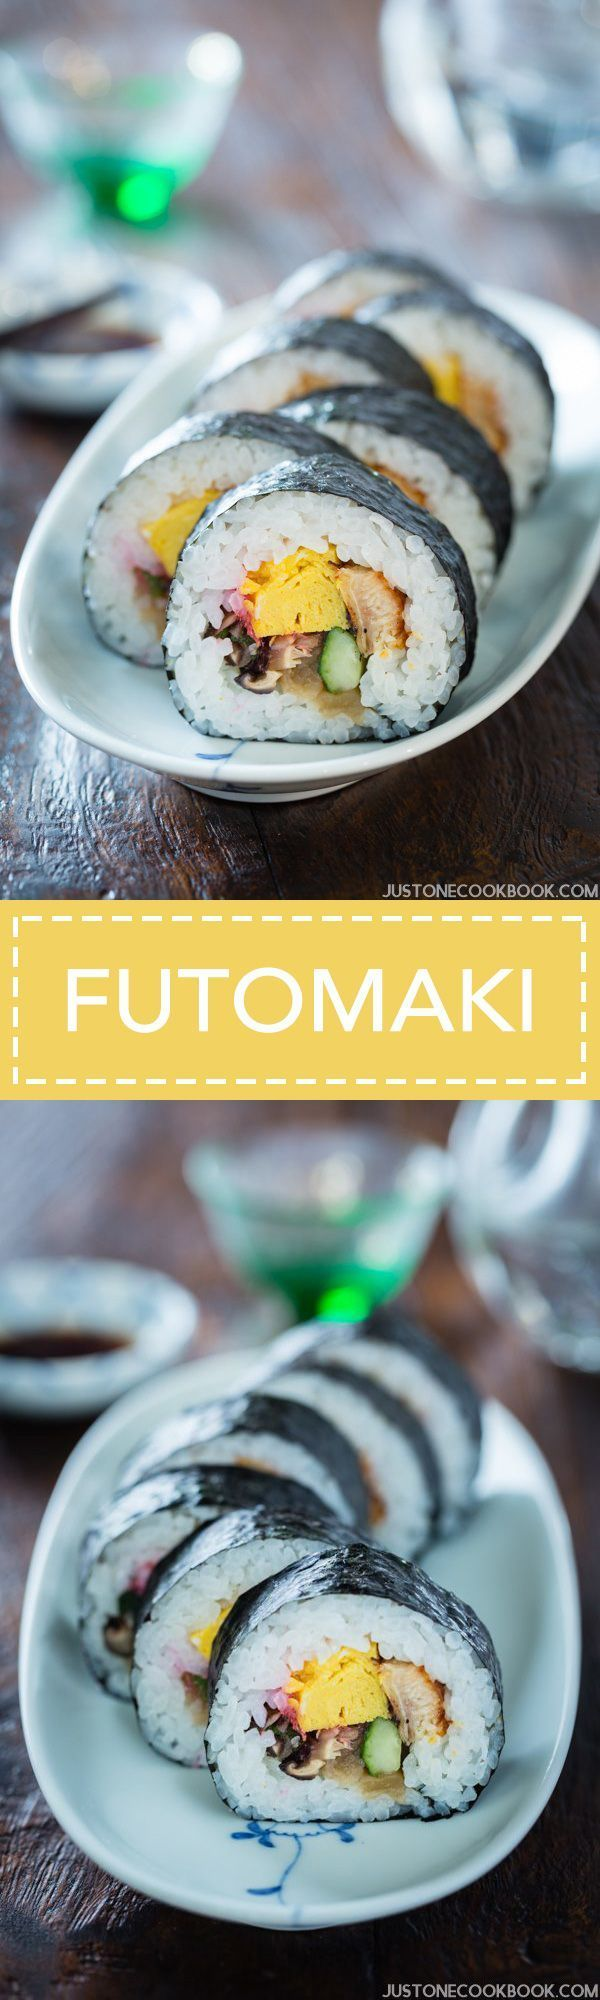 Futomaki 太巻き (Ehomaki 恵方巻き) | Easy Japanese Recipes at JustOneCookbook.com